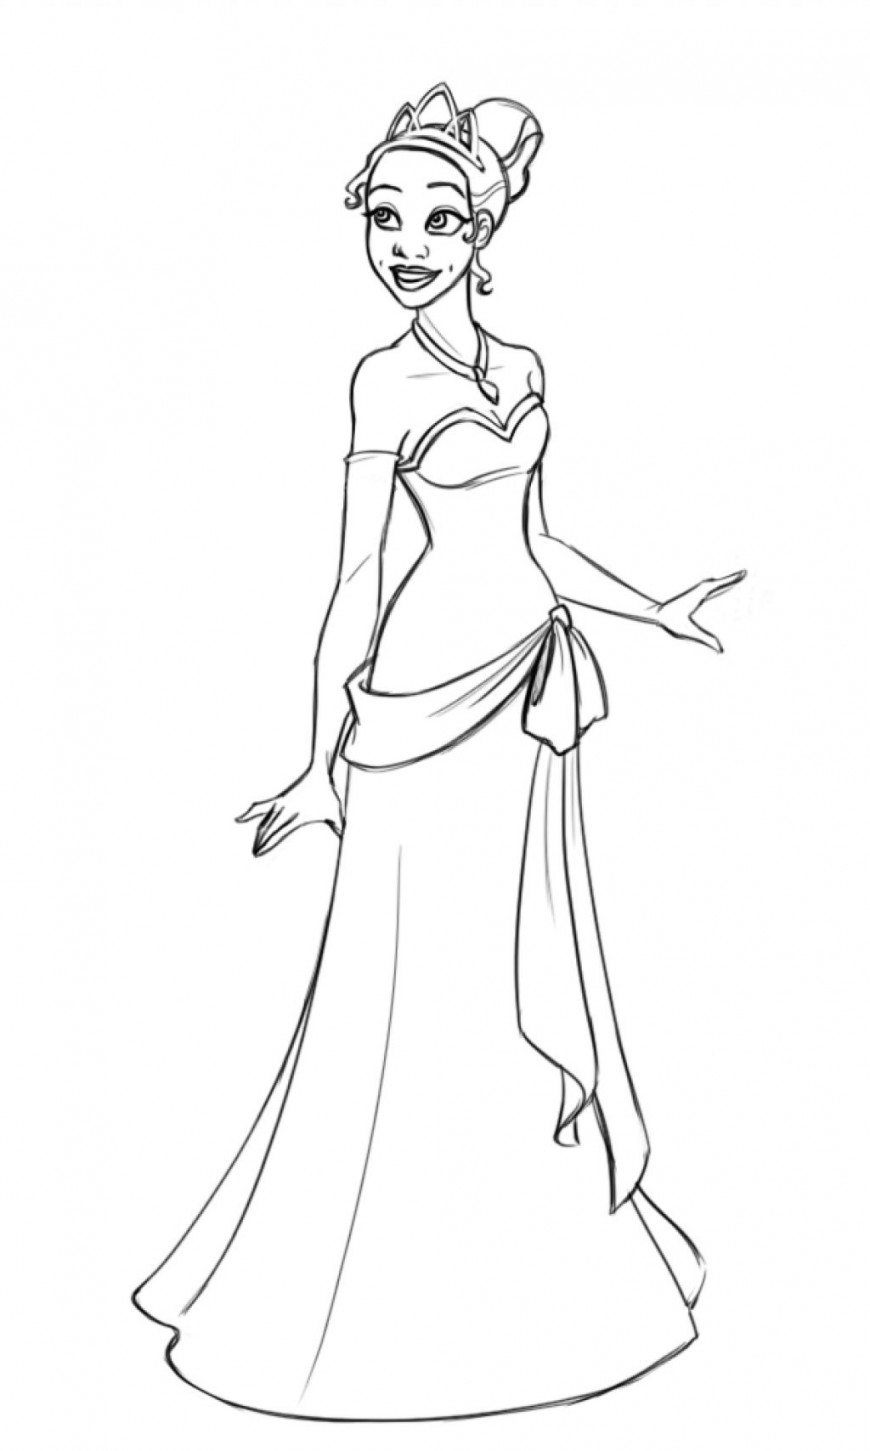 Free Printable Princess Tiana Coloring Pages For Kids